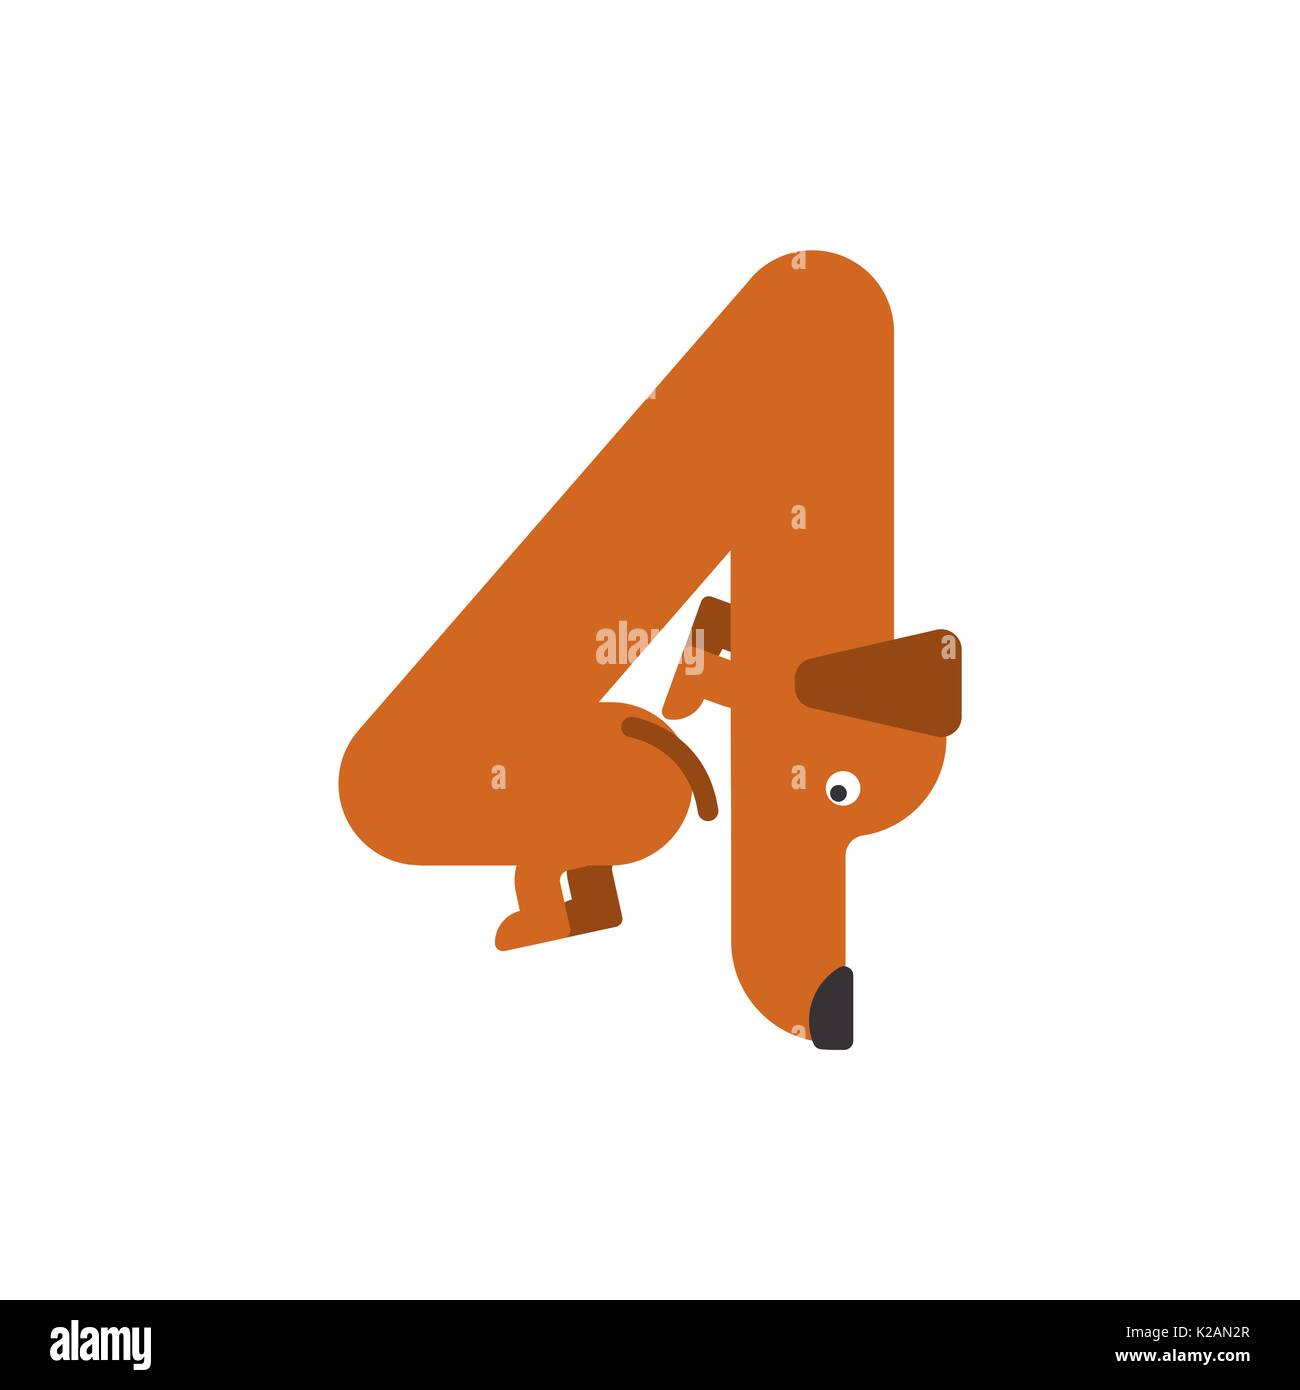 Figure 4 Dog Dachshund Font Four Home Pet Abc Symbol Home Animal